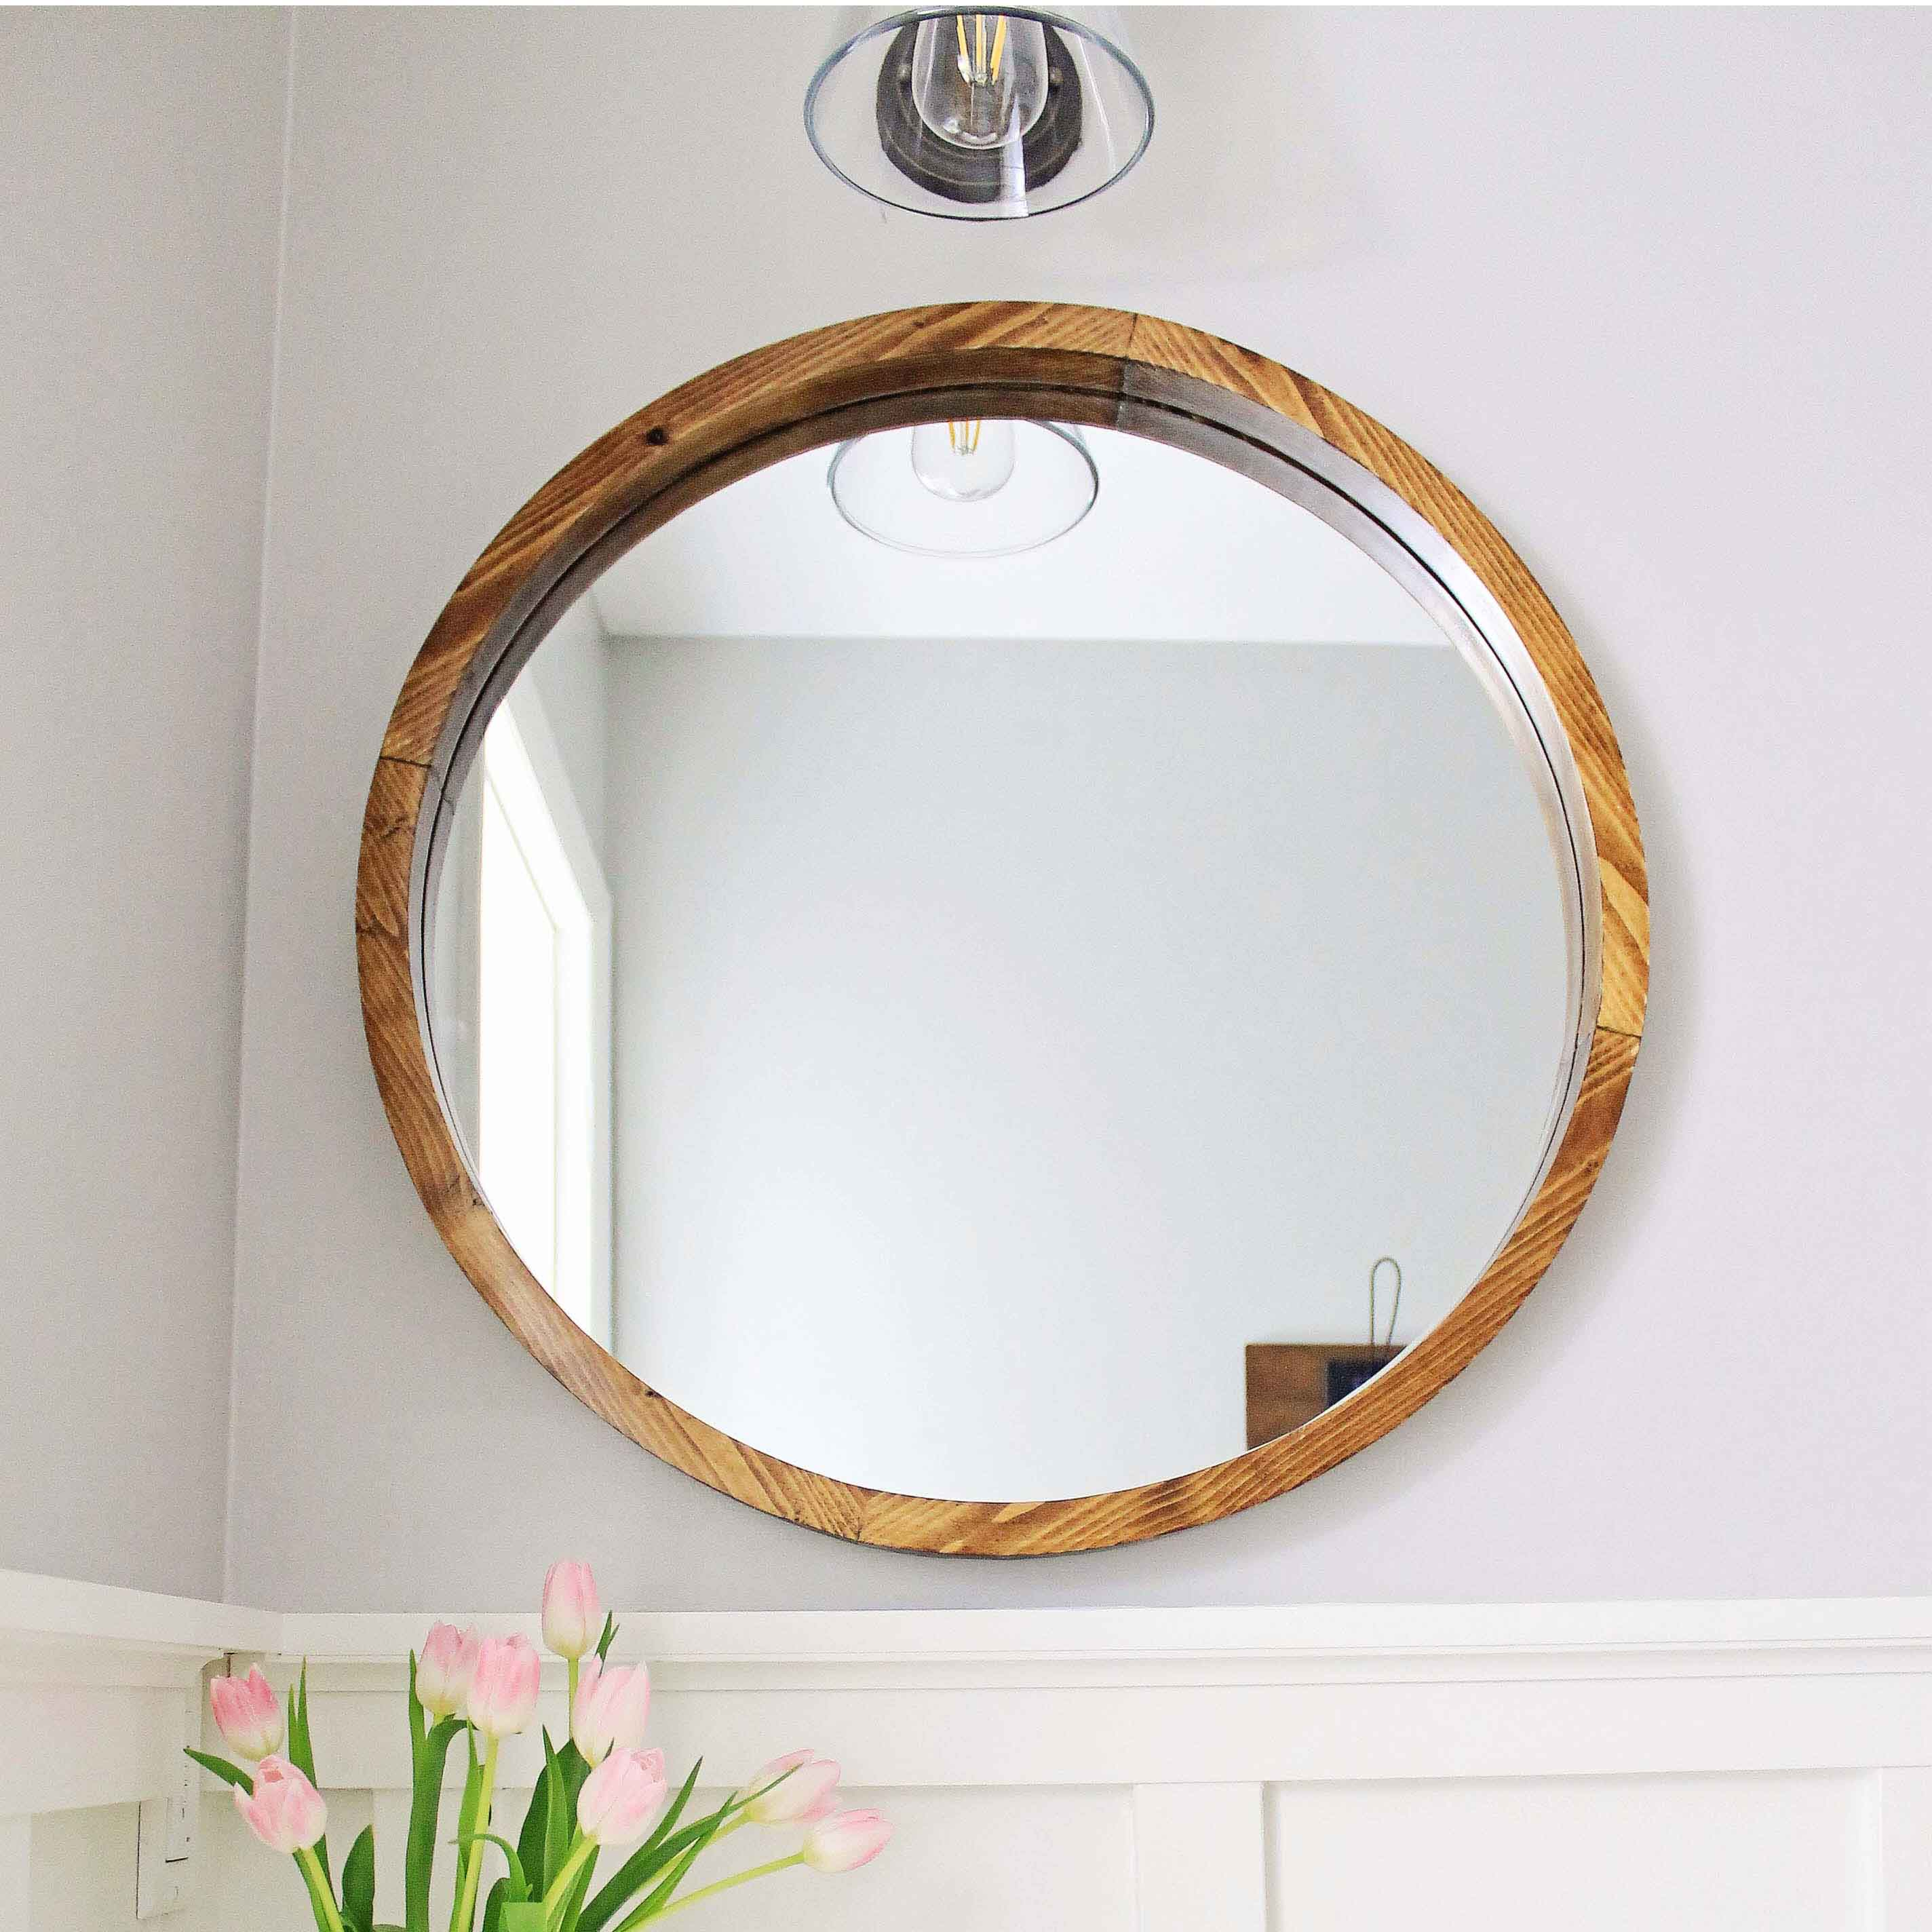 Round wood mirror diy angela marie made for Circle mirror